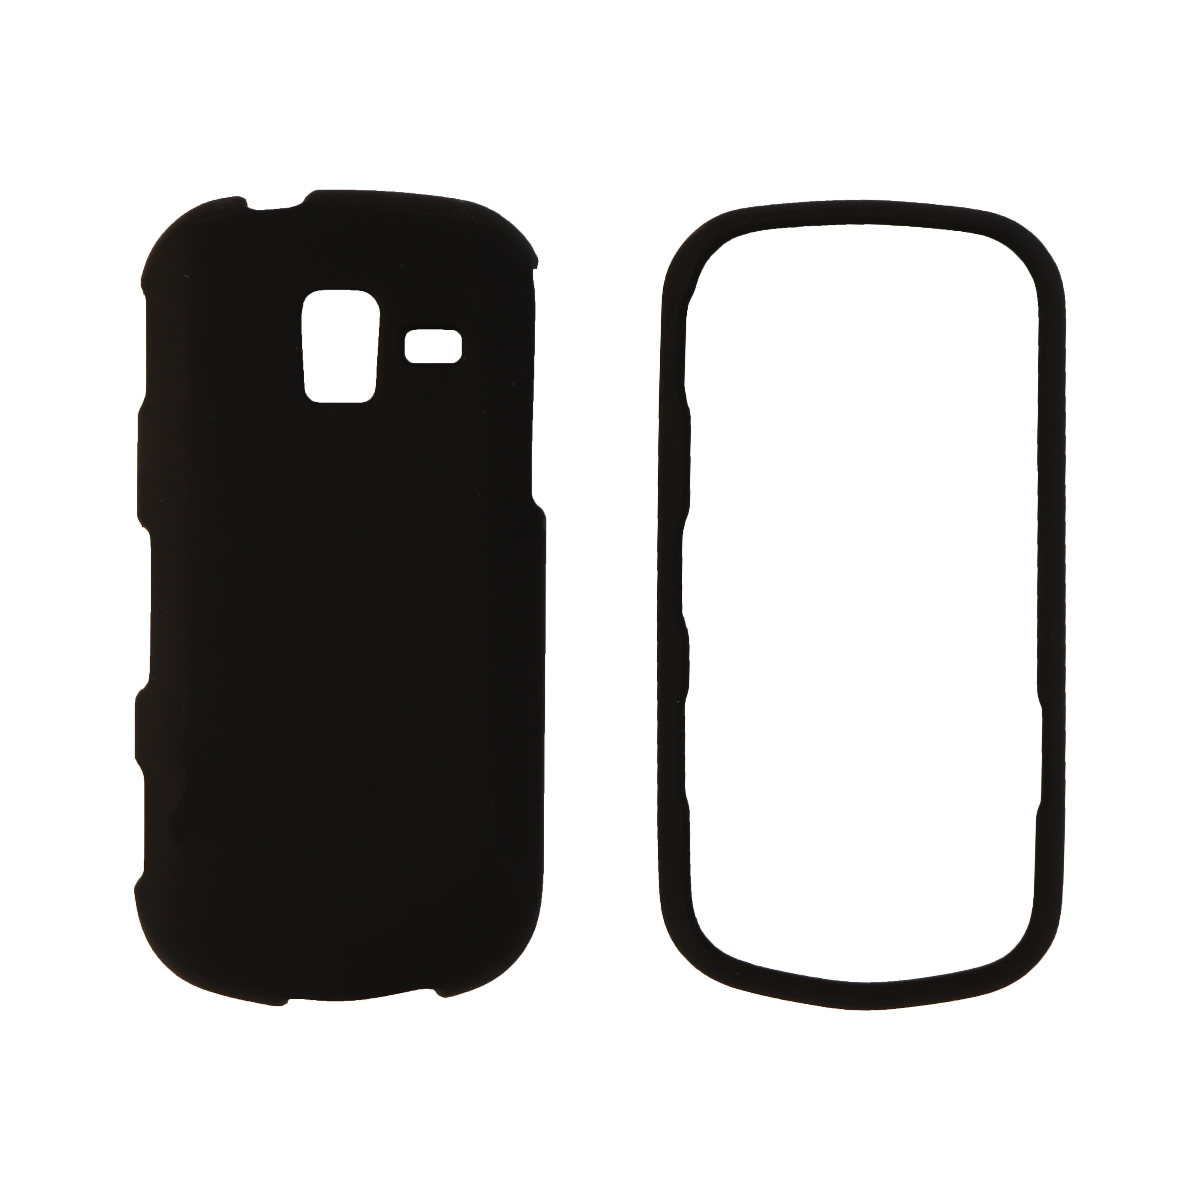 Z Wireless Soft Shell Protective Case Cover for Samsung U485 - Black